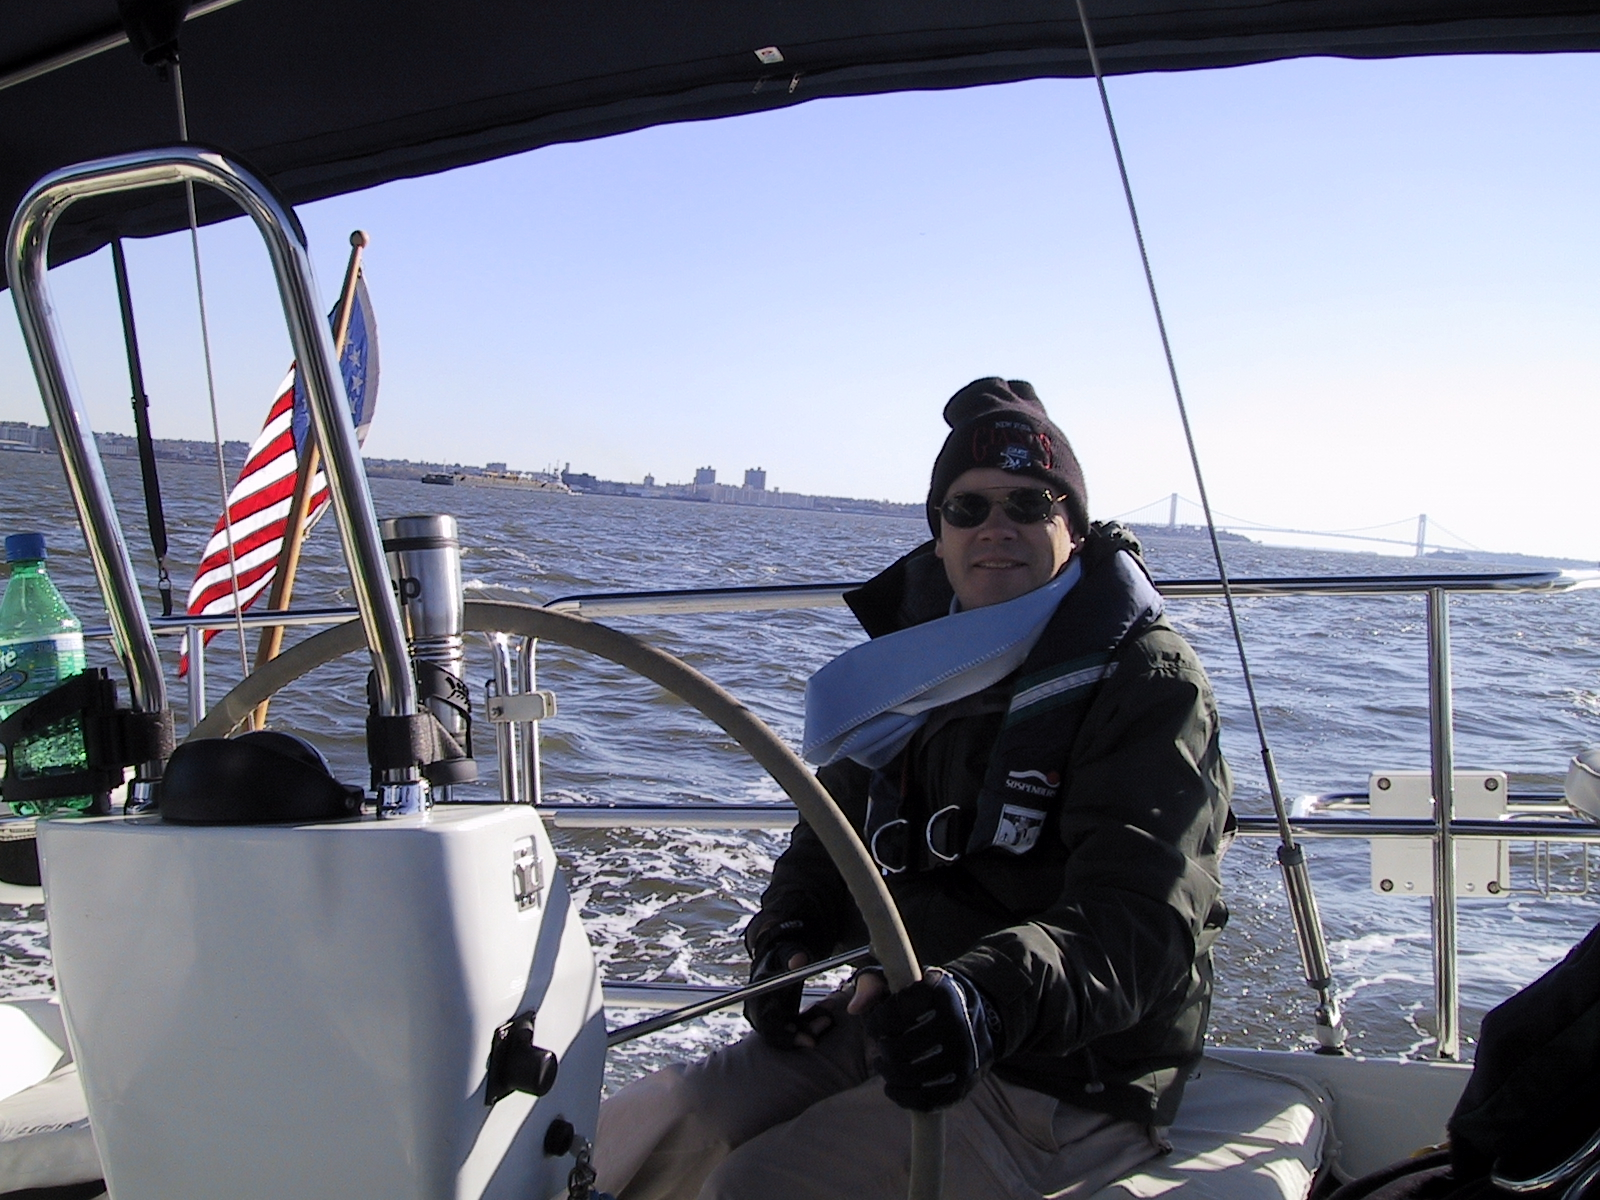 Sandy at the Helm 11-02-05